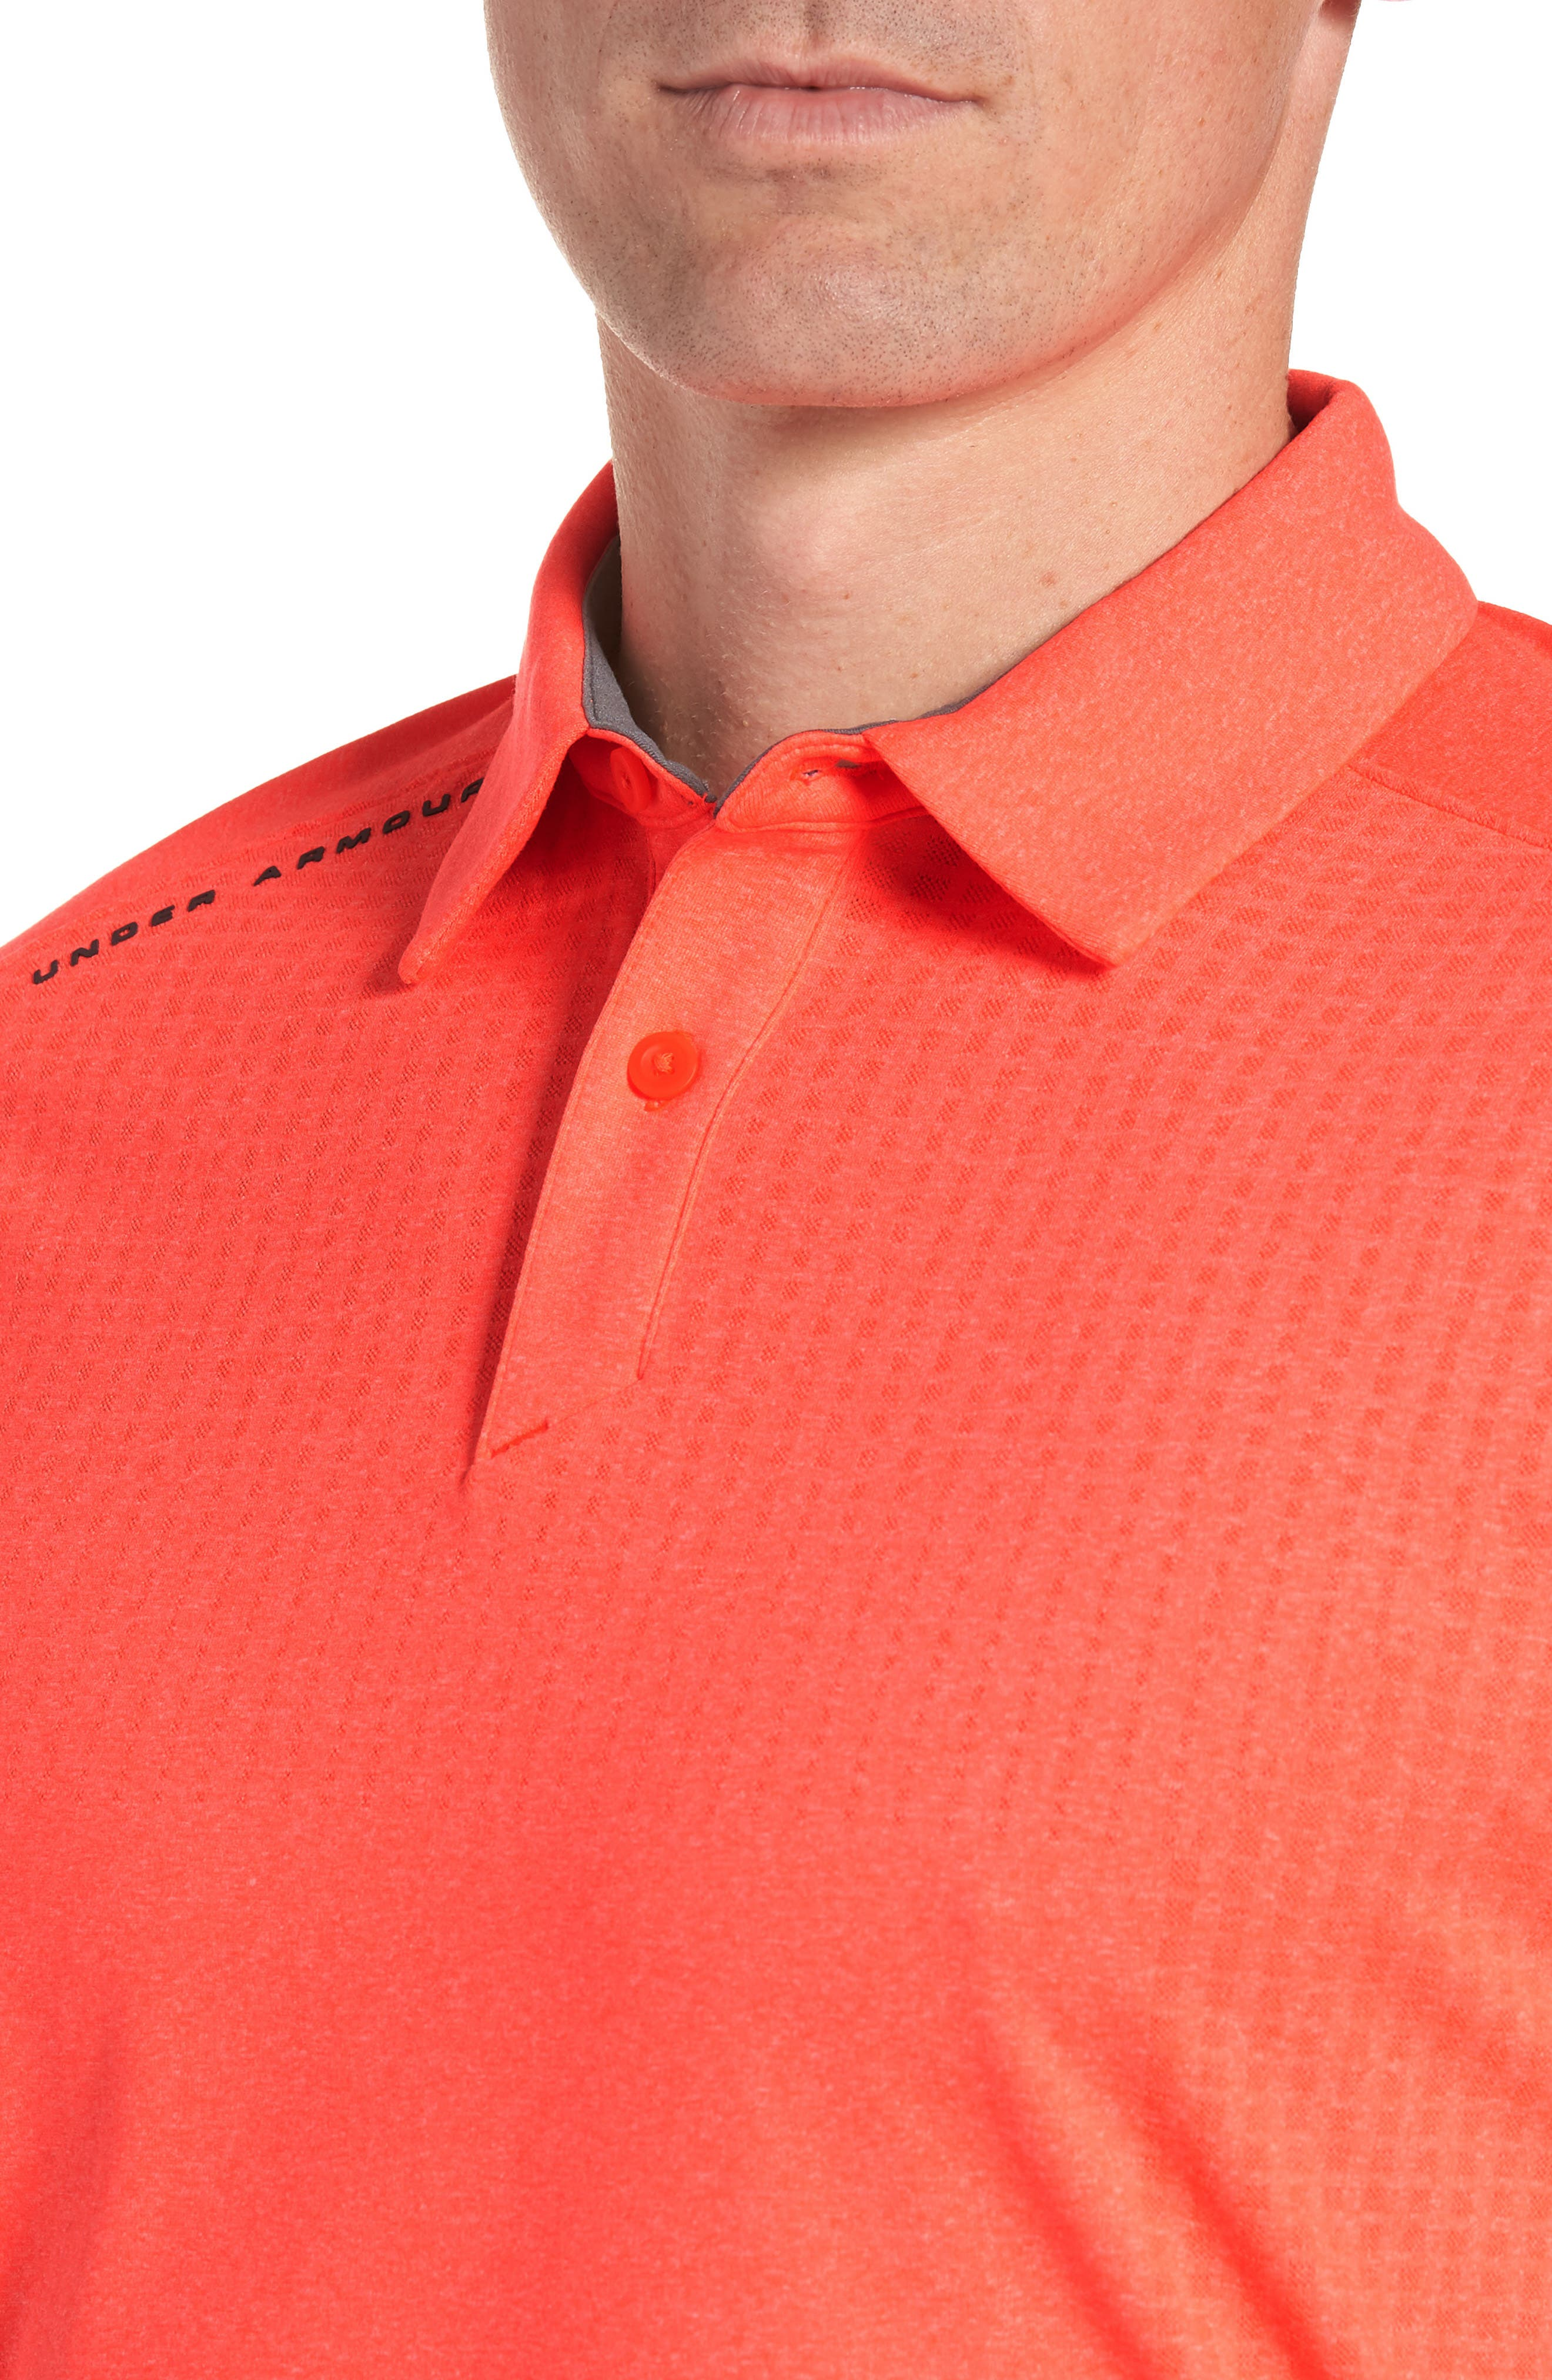 UNDER ARMOUR, Threadborne Outer Glow Regular Fit Polo Shirt, Alternate thumbnail 4, color, NEON CORAL LIGHT/ HEATHER